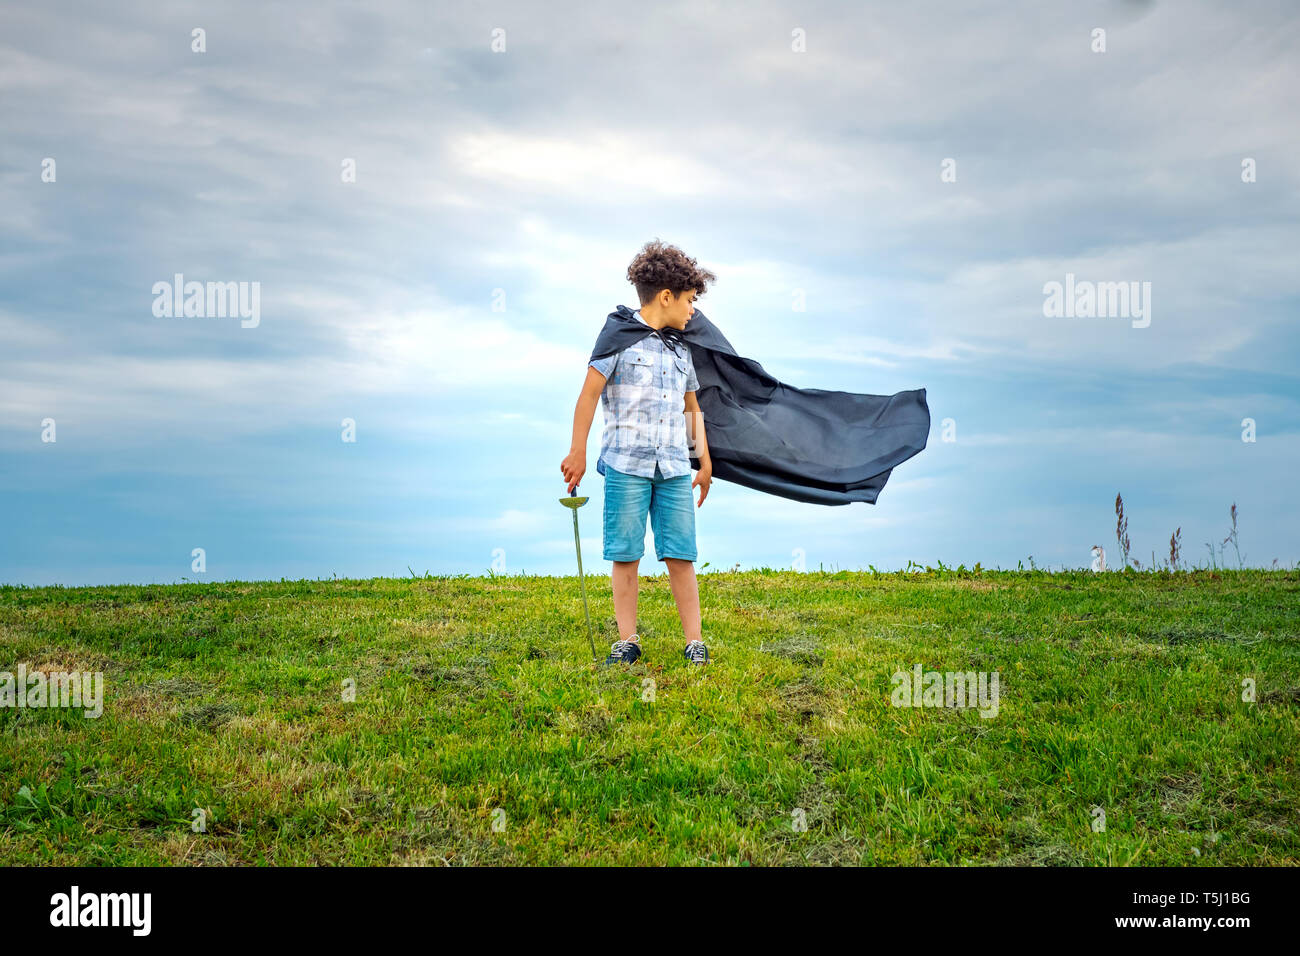 Young boy super hero with blowing cloak standing outdoors in a green field in the wind looking behind to watch it billow in the breeze - Stock Image